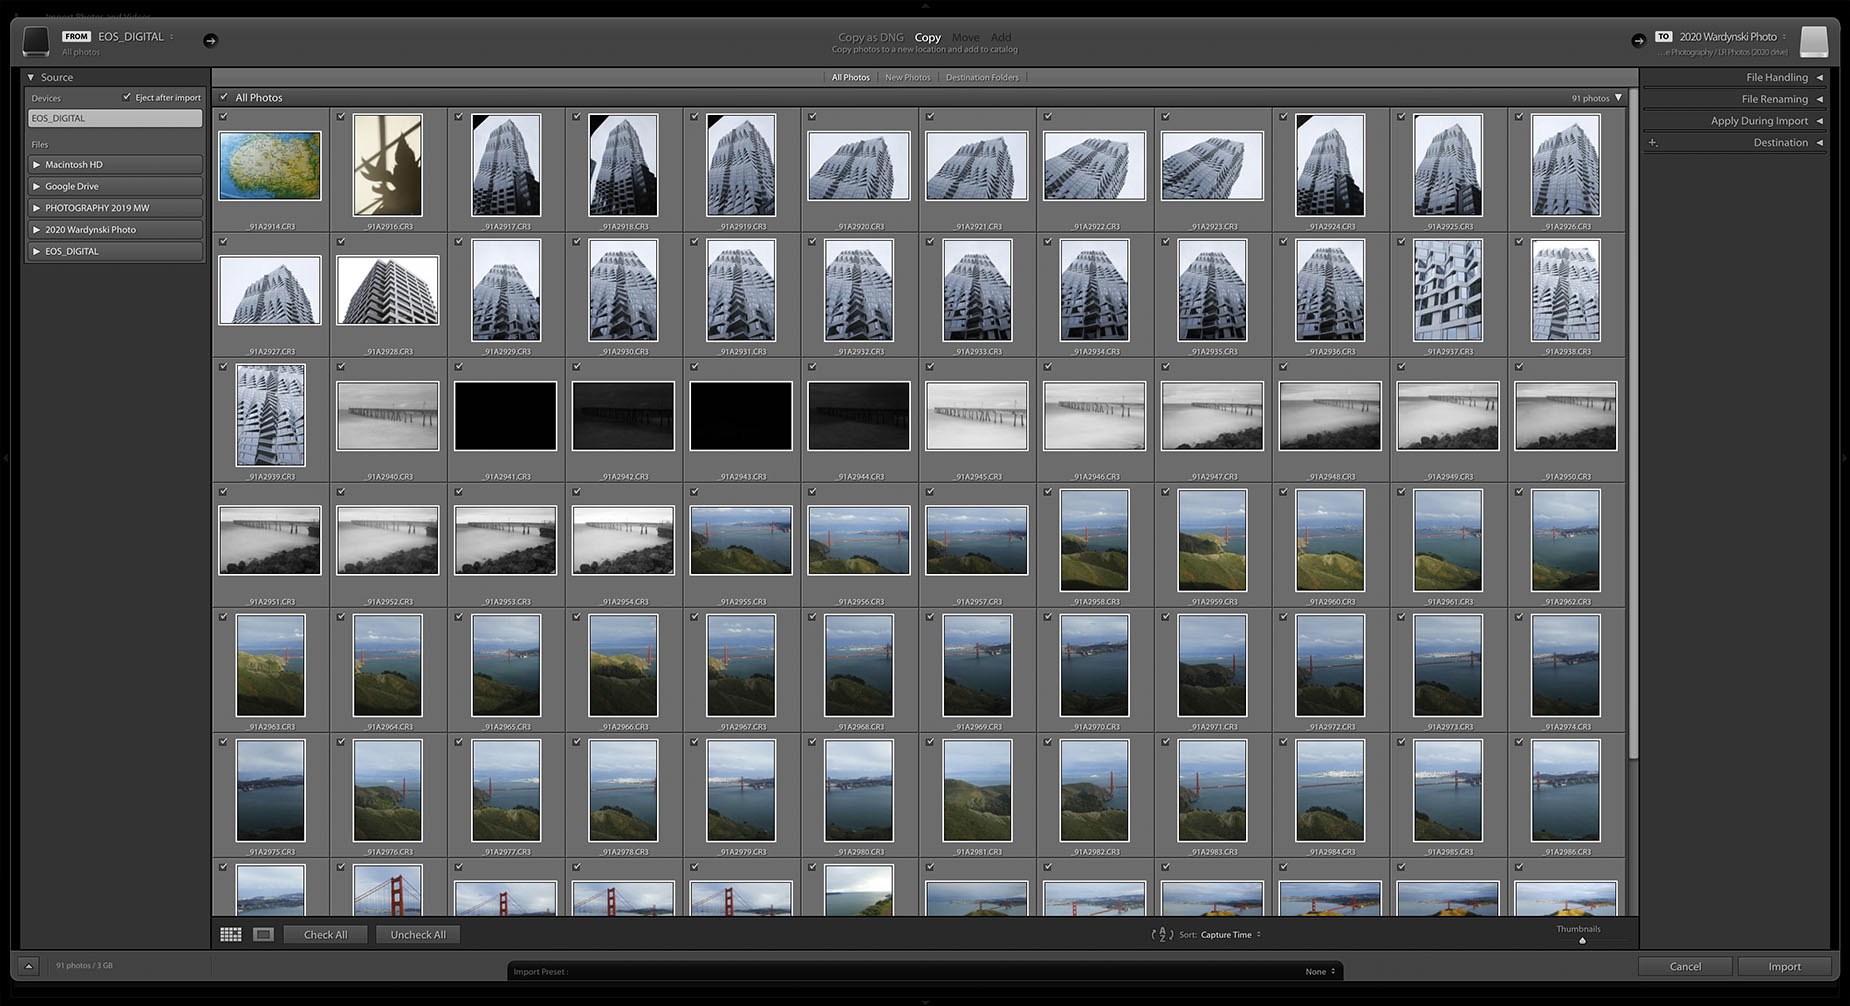 lightroom classic import screen check boxes